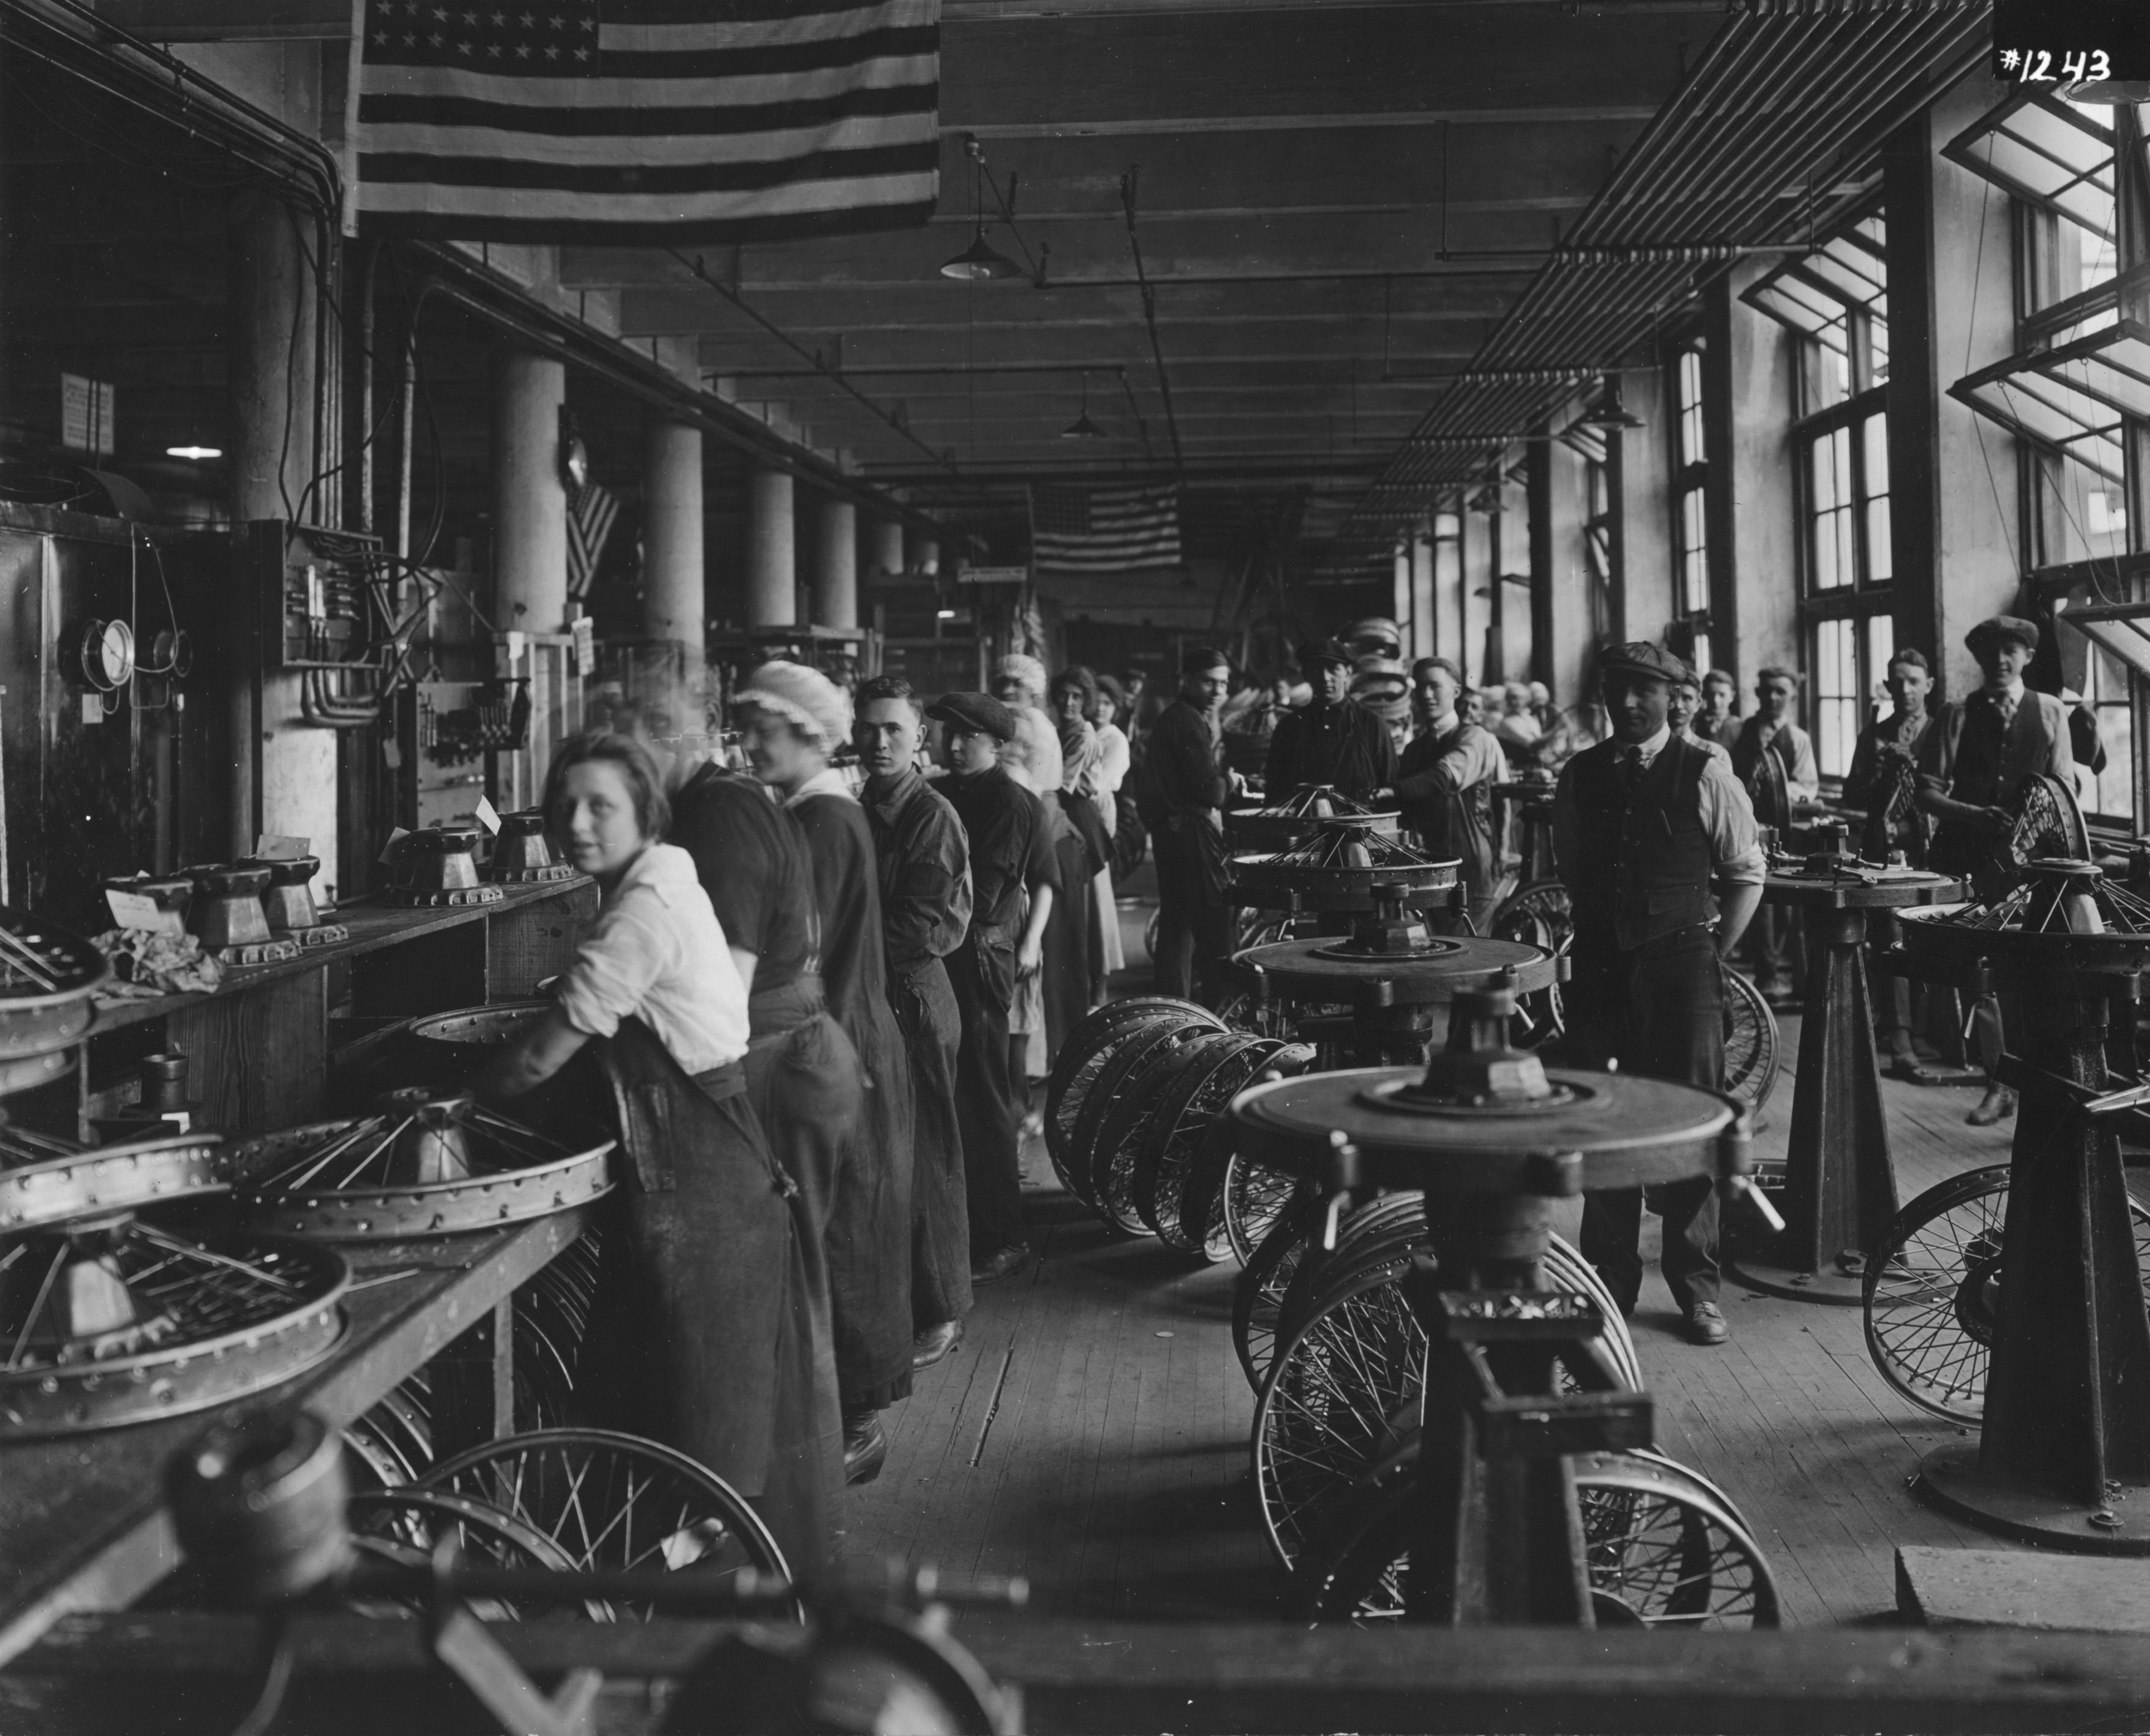 Black and white image of workers on assembly line in wheel factory